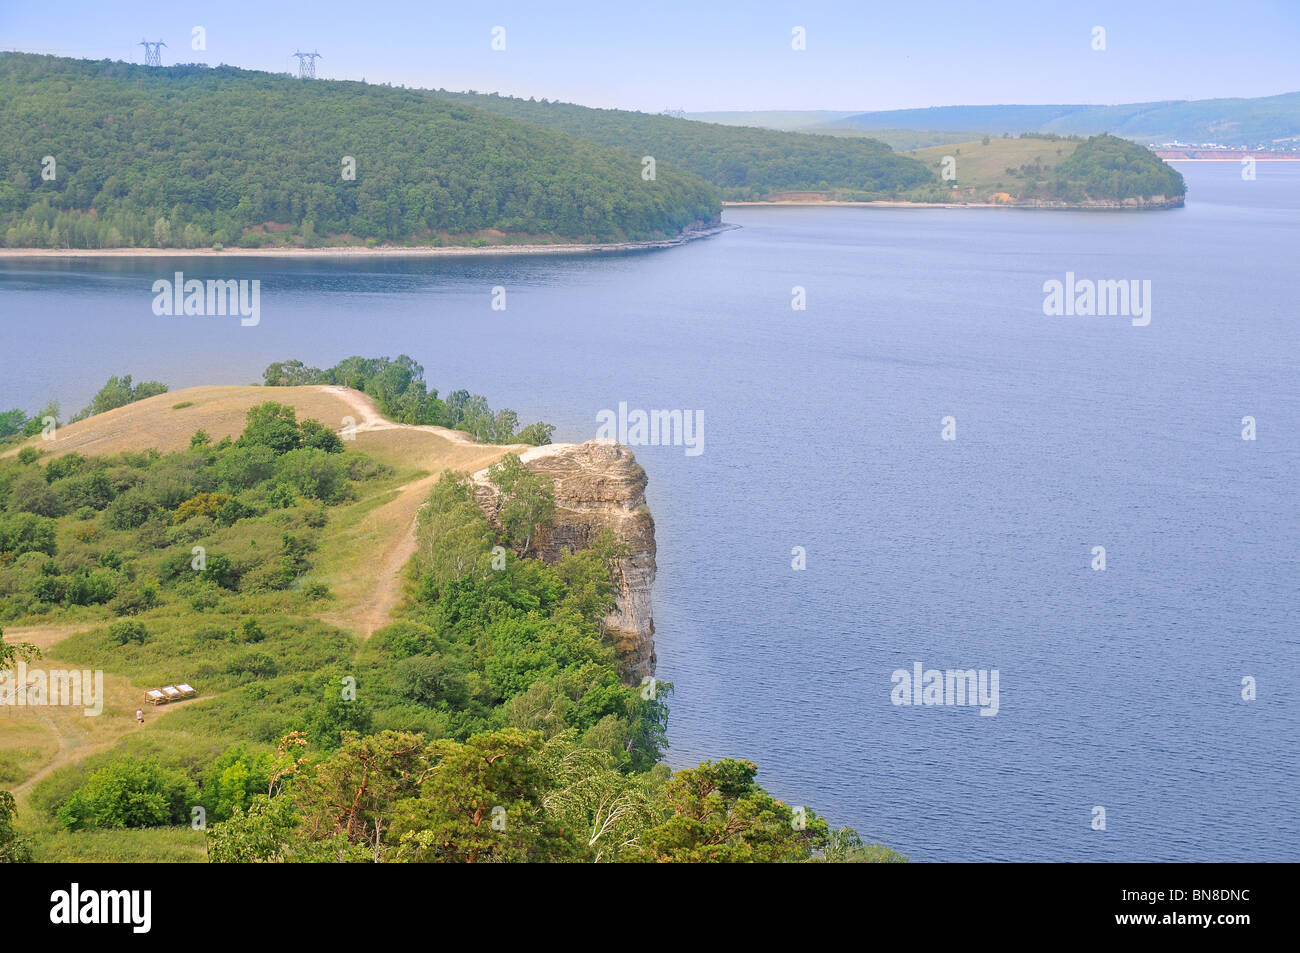 Beautiful Scenery Of Volga River In Russian National Park Samara - The volga river